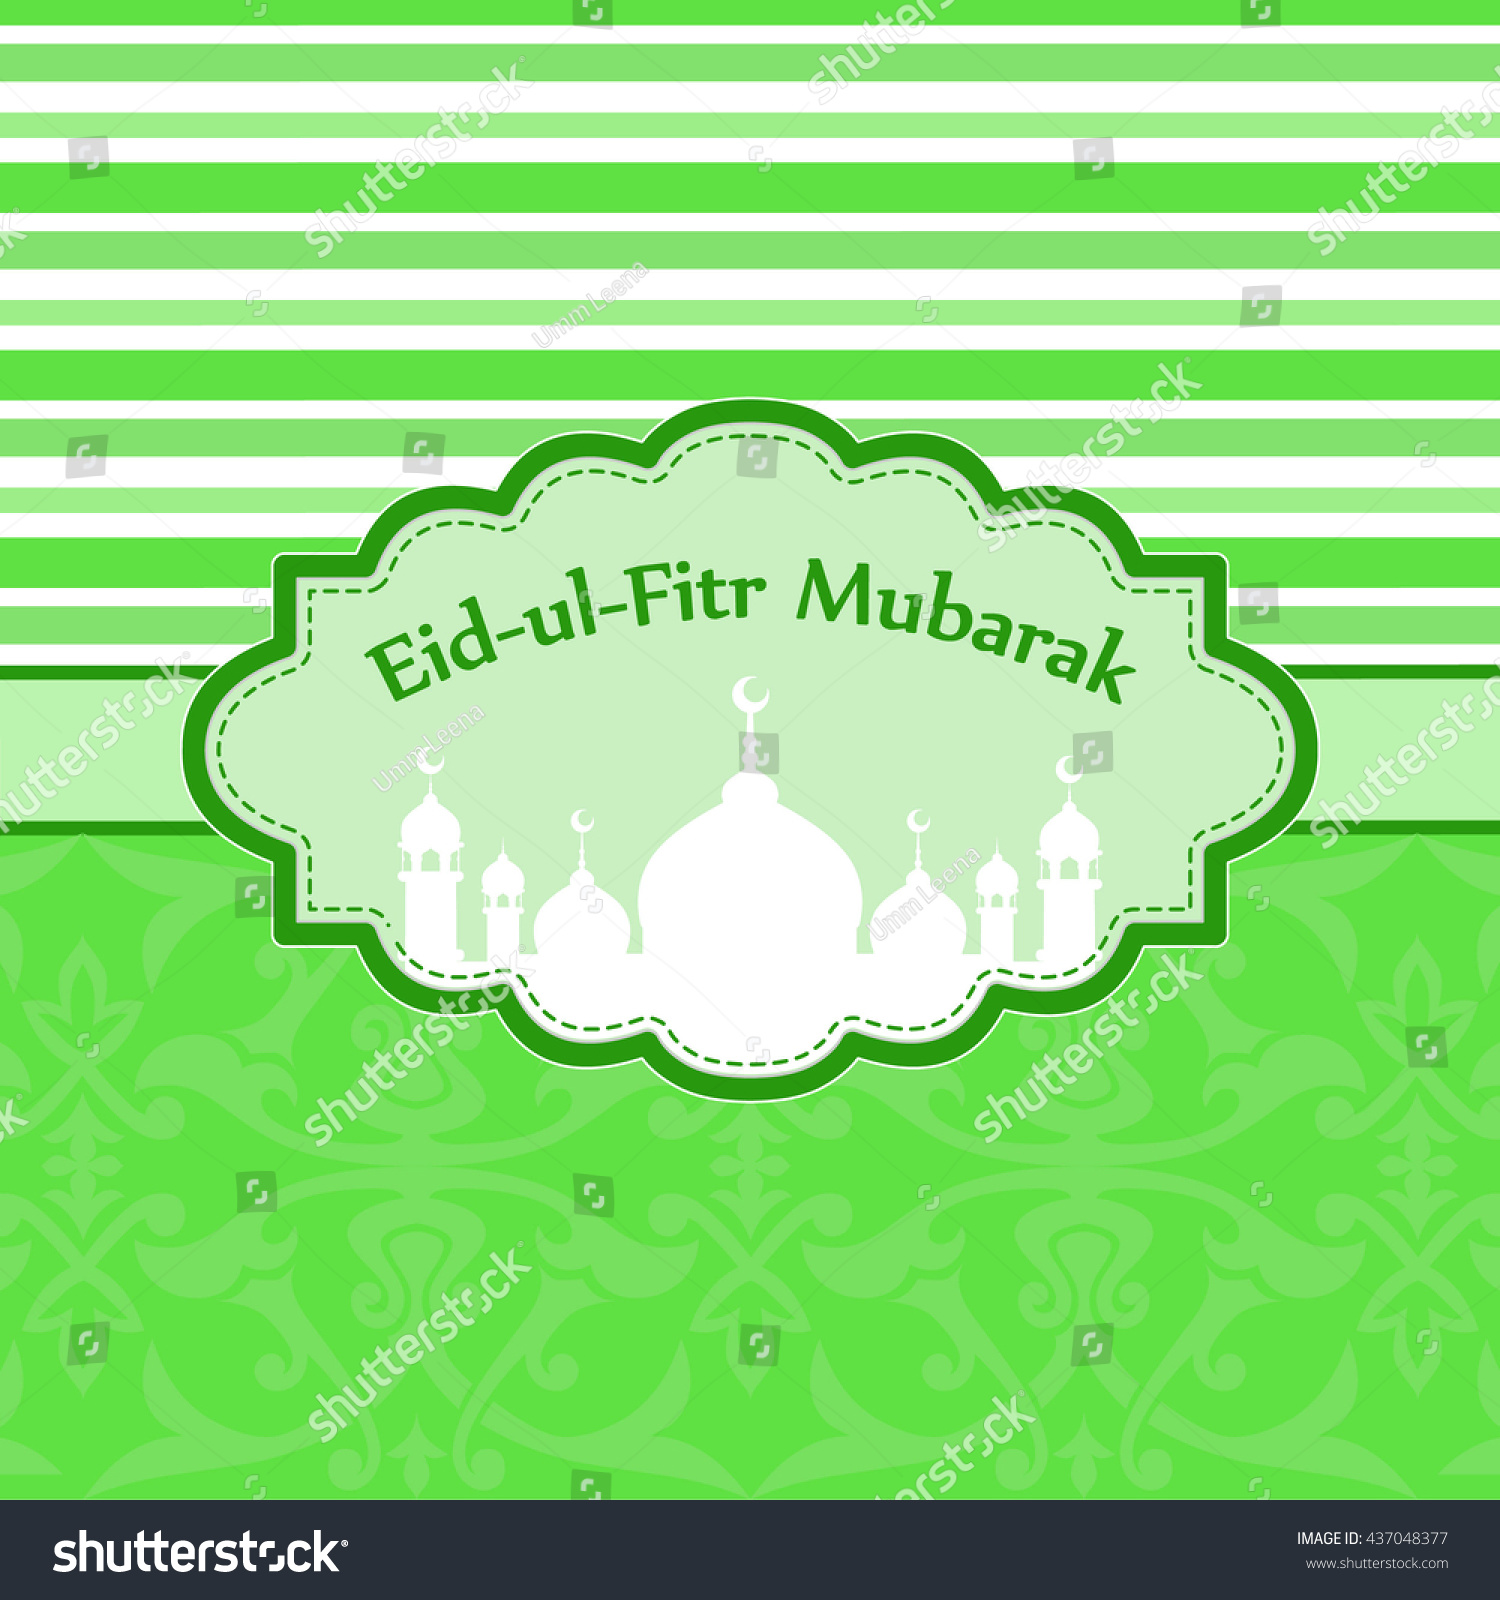 Wonderful Window eid al-fitr decorations - stock-vector-sticker-or-label-design-for-eid-al-fitr-celebration-design-decorated-frame-with-mosque-for-month-437048377  Image_9616100 .jpg